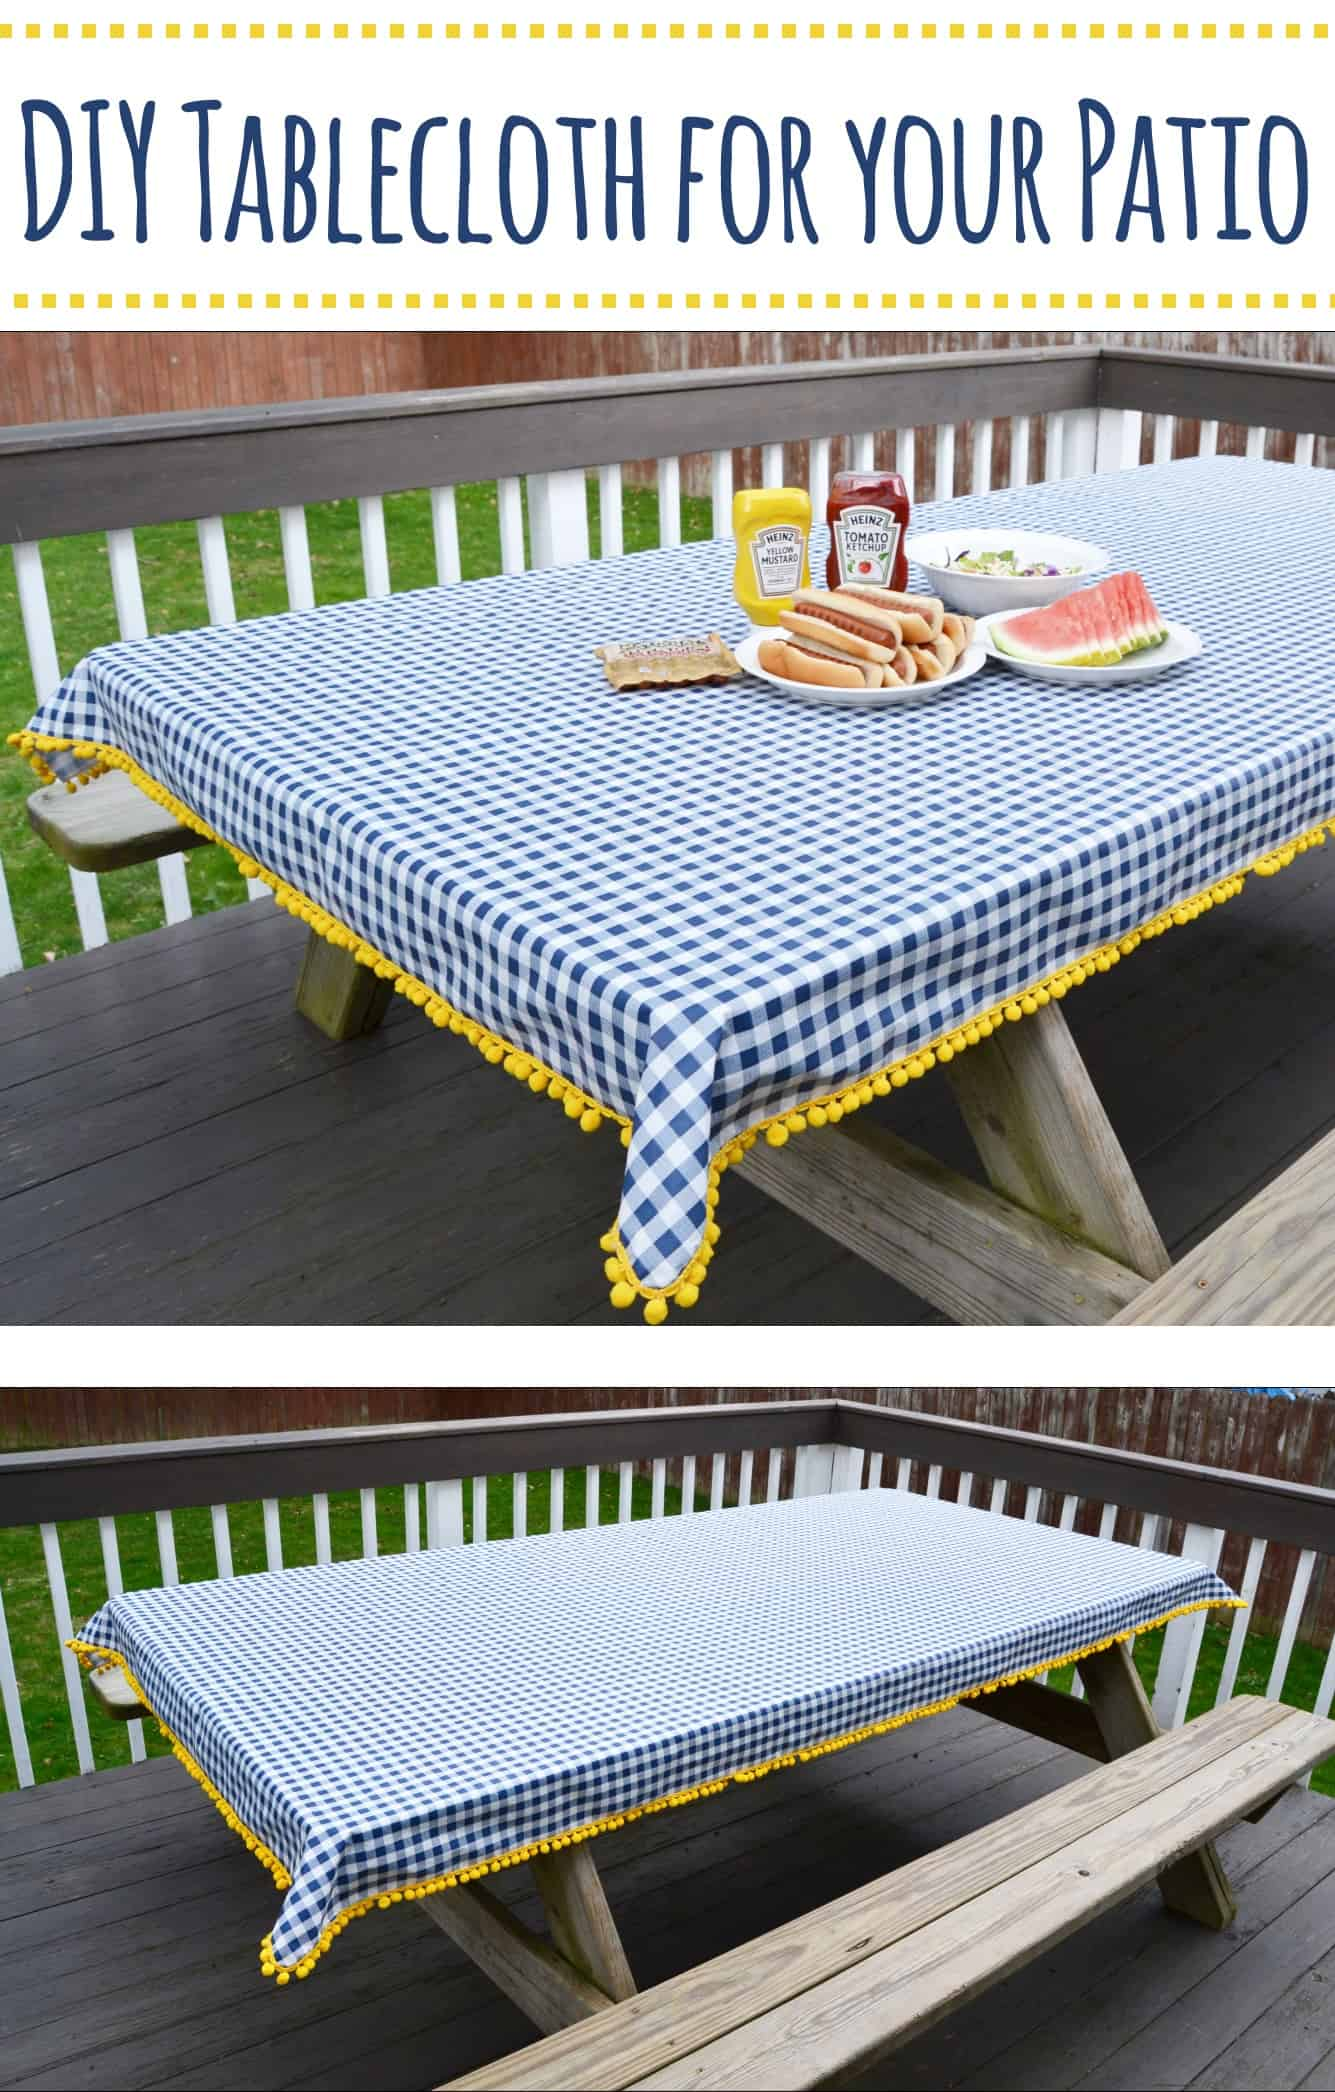 How To Make A Tablecloth For Your Patio